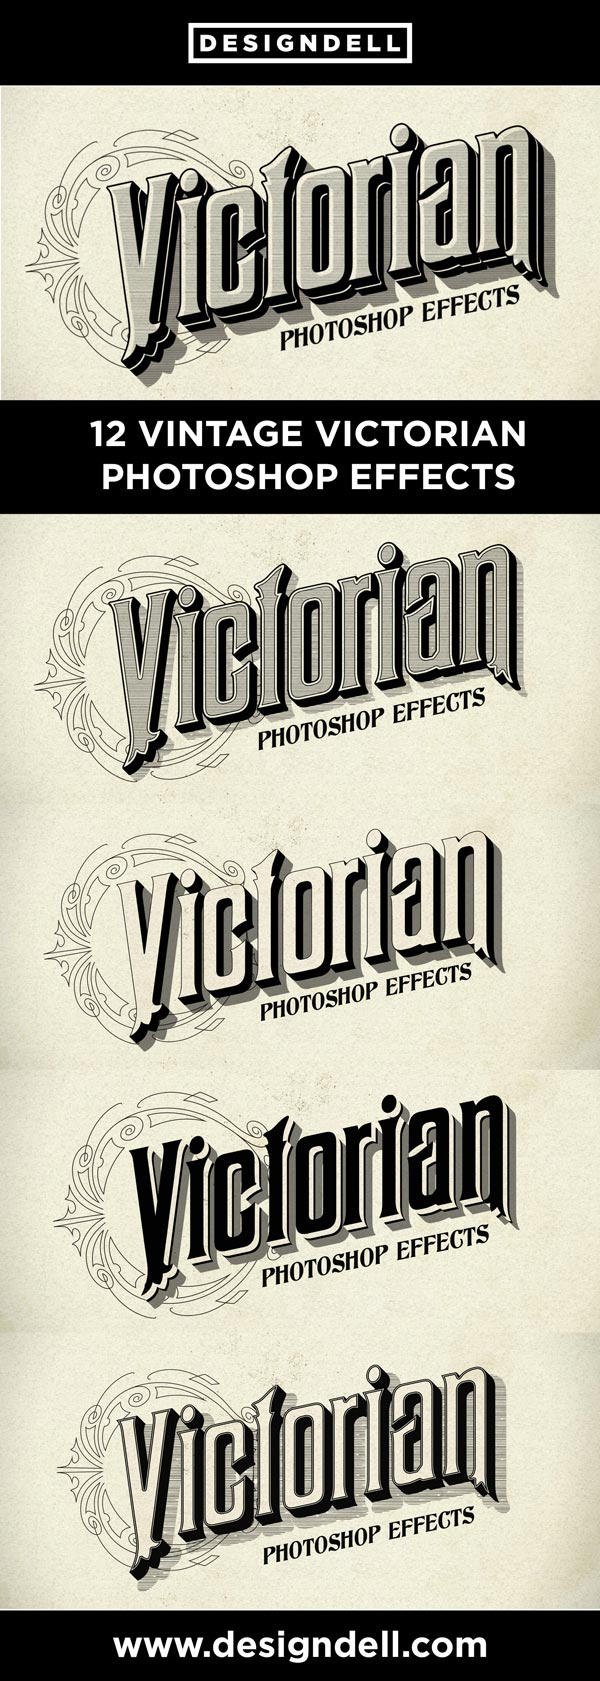 Victorian Photoshop Text Effects - Victorian lettering in seconds